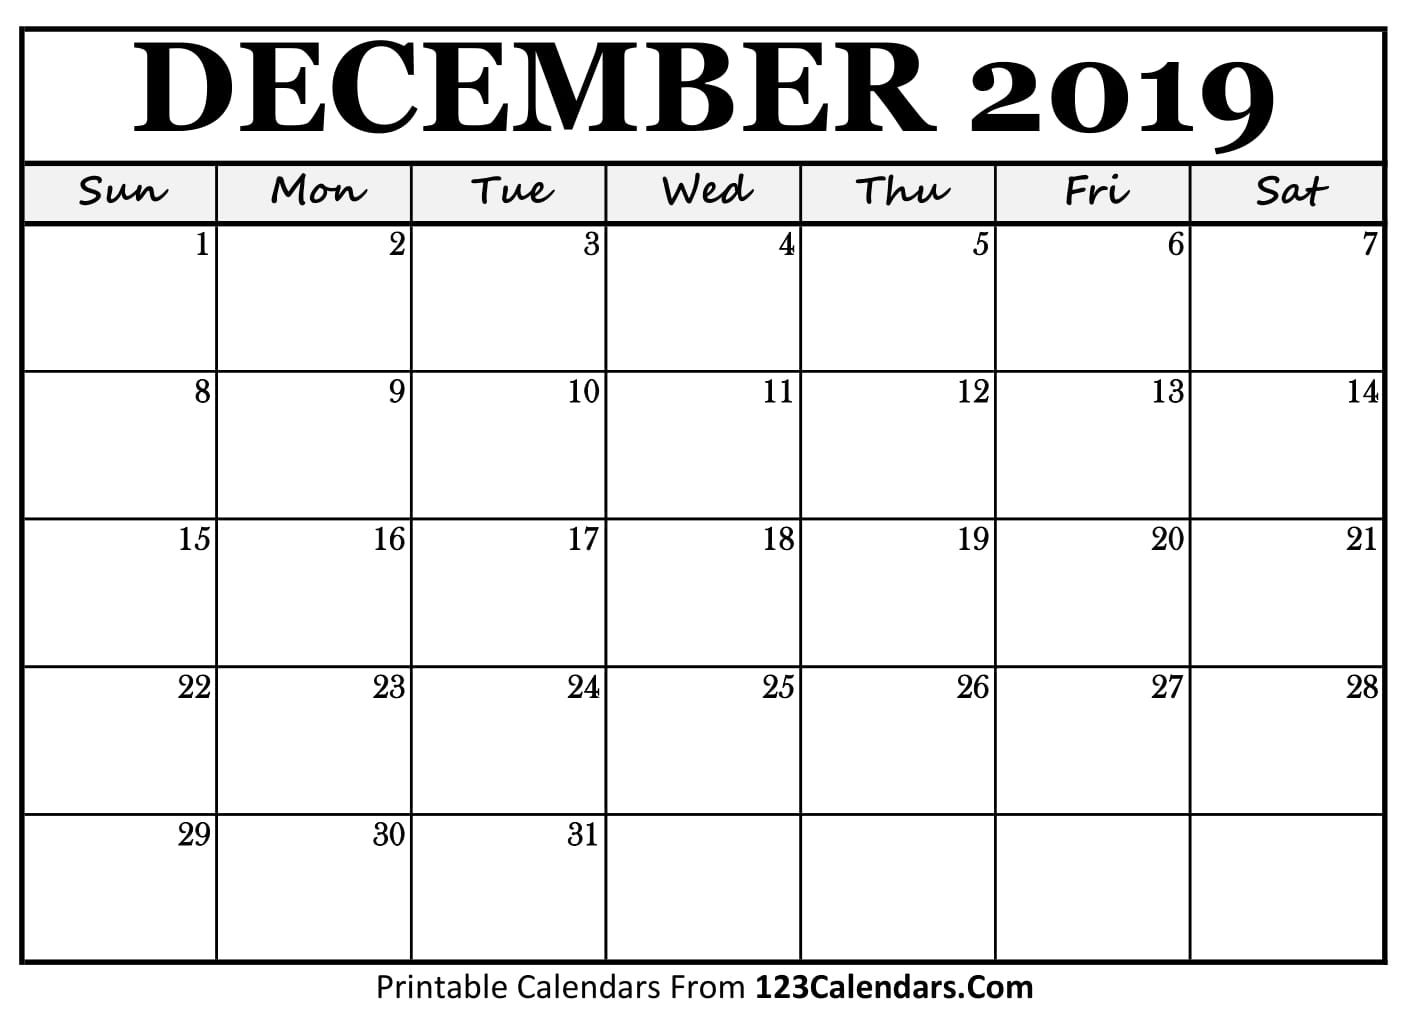 December 2019 Printable Calendar | 123Calendars inside Blank Monthly Calendar Dec